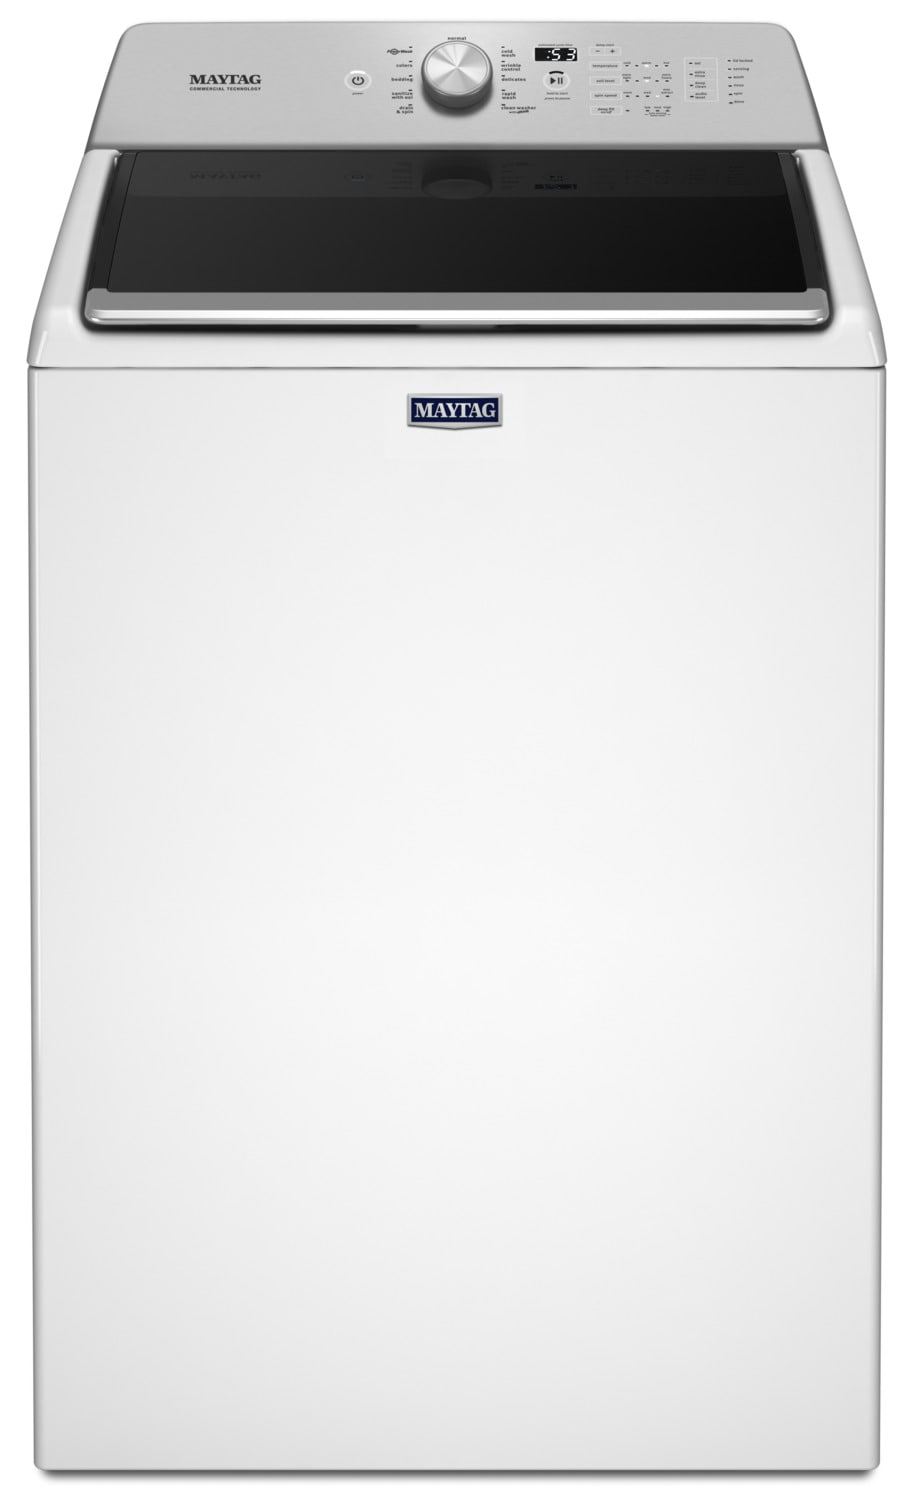 Maytag White Top-Load Bravos Washer (5.5 Cu. Ft. IEC) - MVWB765FW